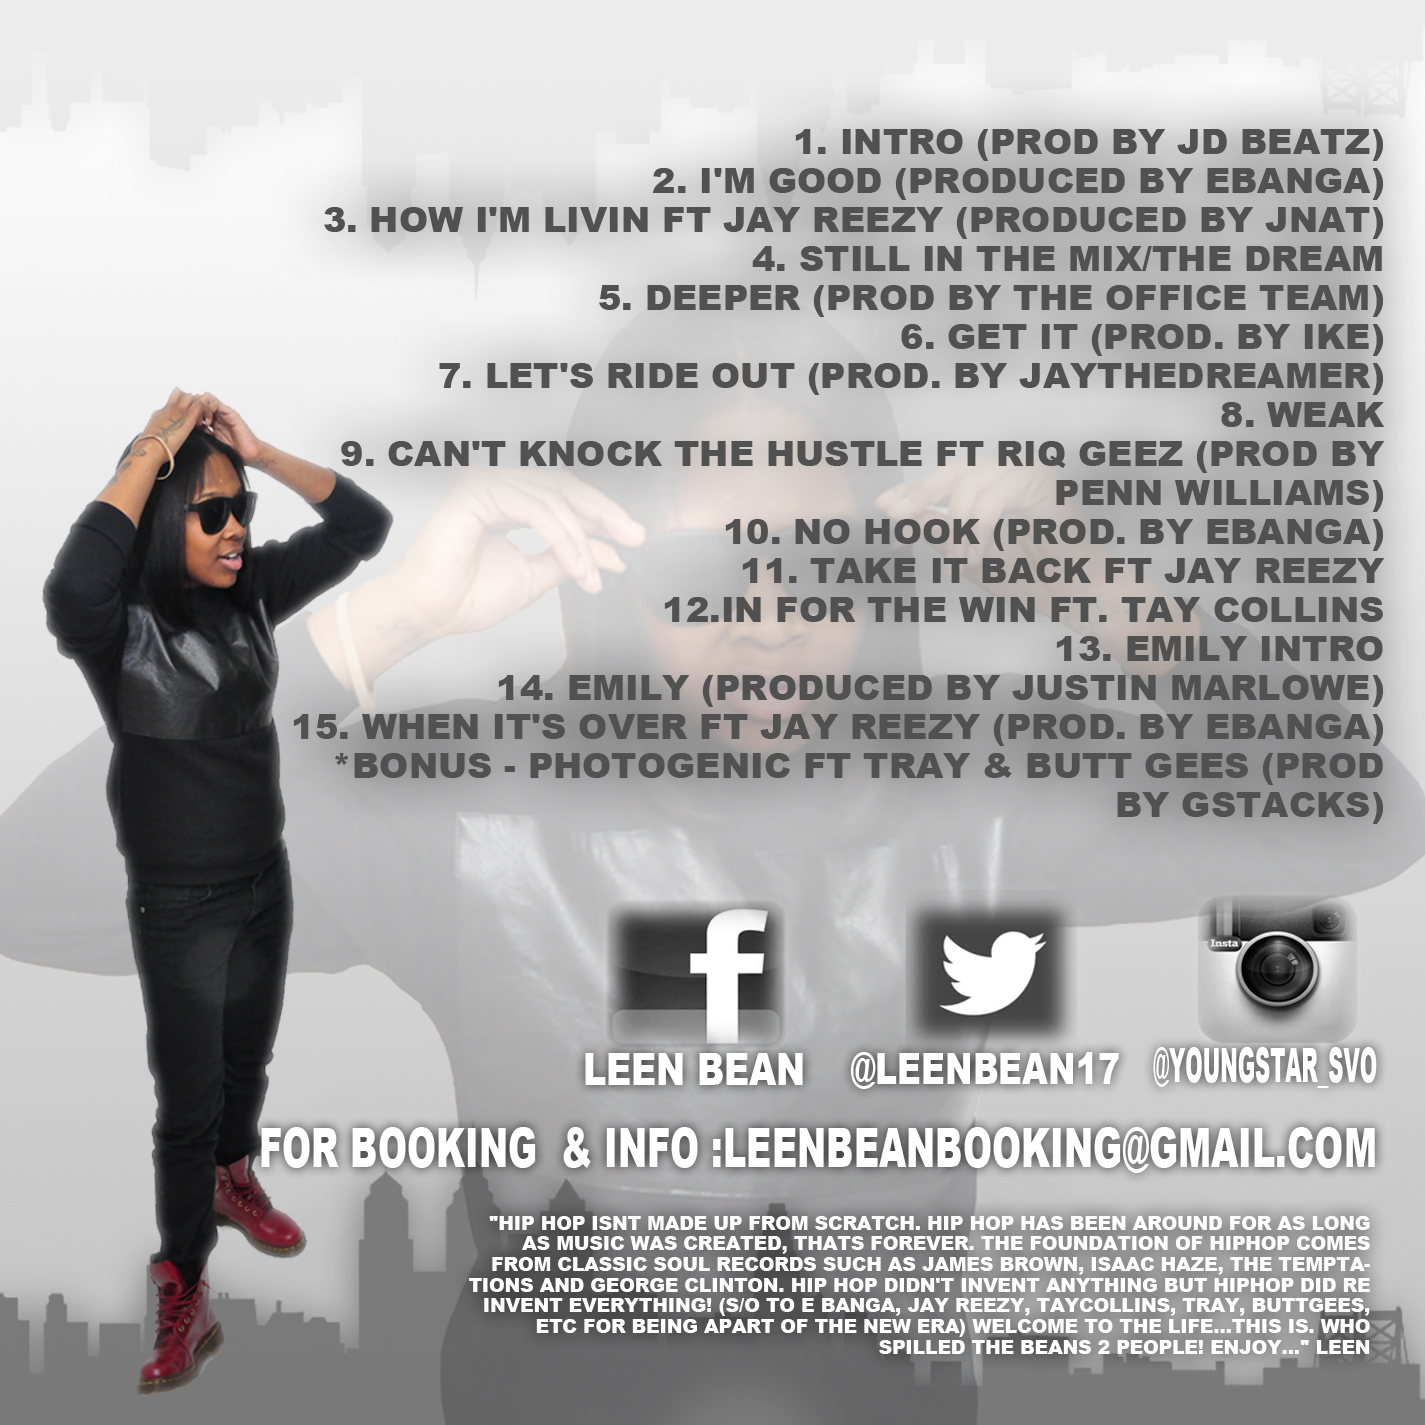 leen bean spilled beans 2 mixtape HHS1987 2013 tracklist Leen Bean   Who Spilled The Beans 2 (Mixtape)